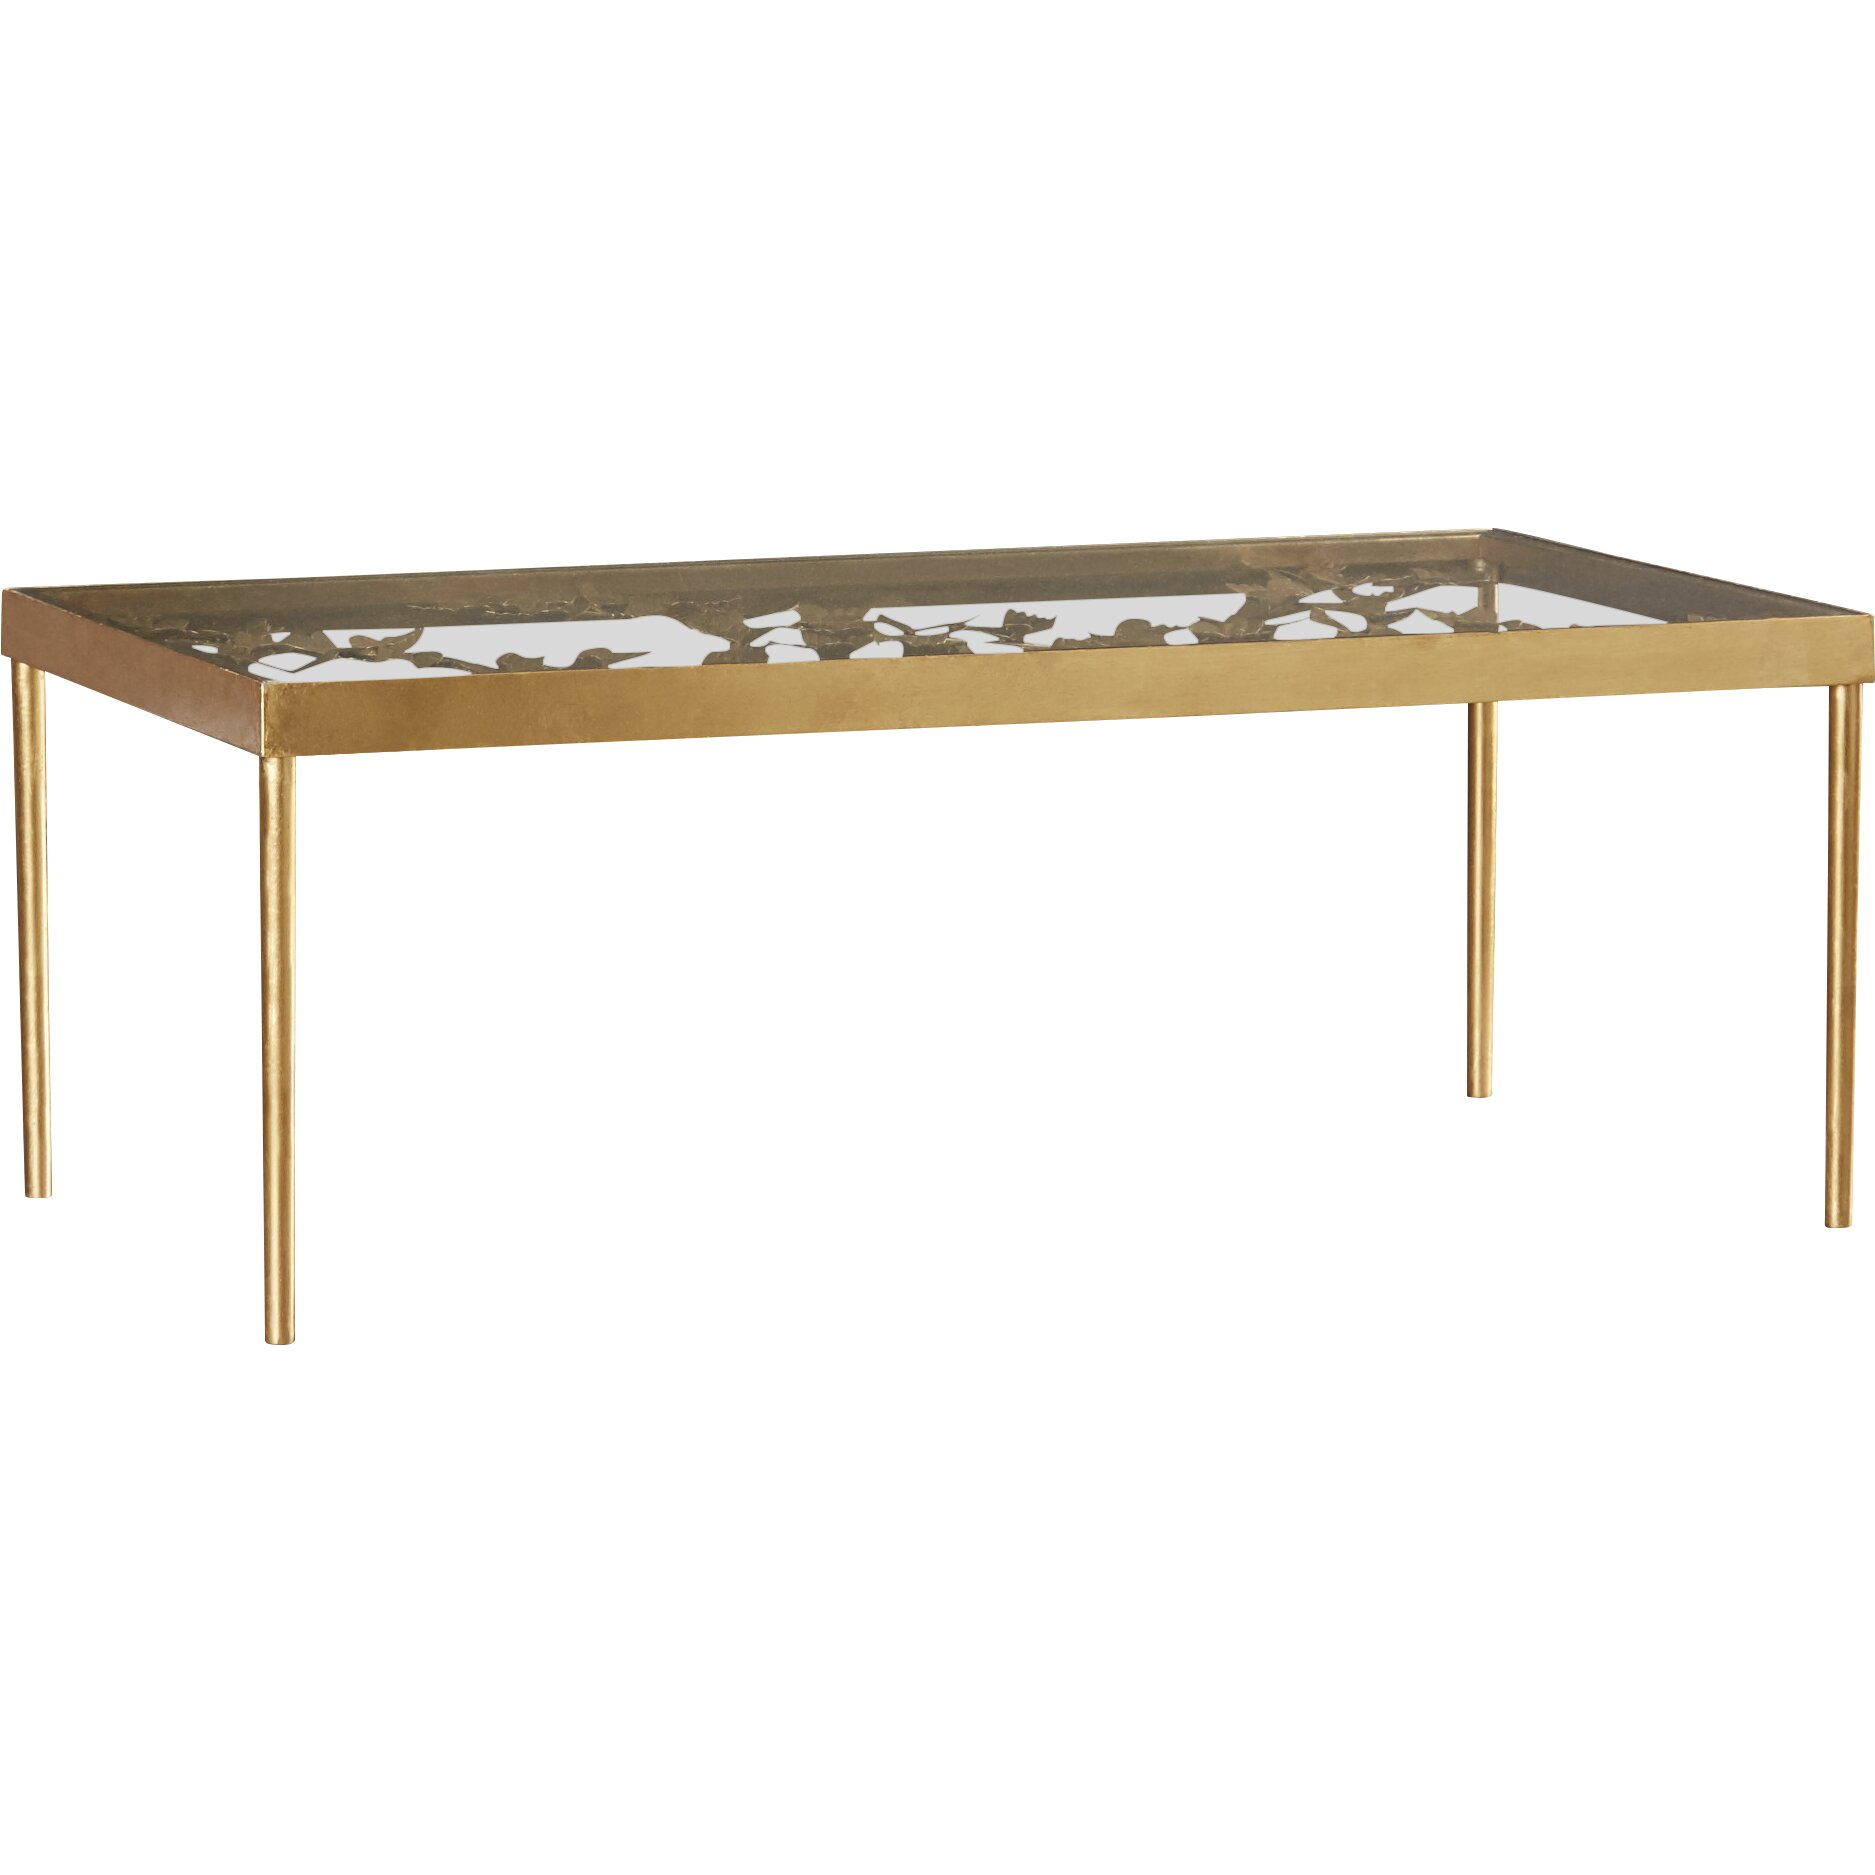 Mercer41 Acton Coffee Table With Tray Top Reviews Wayfair